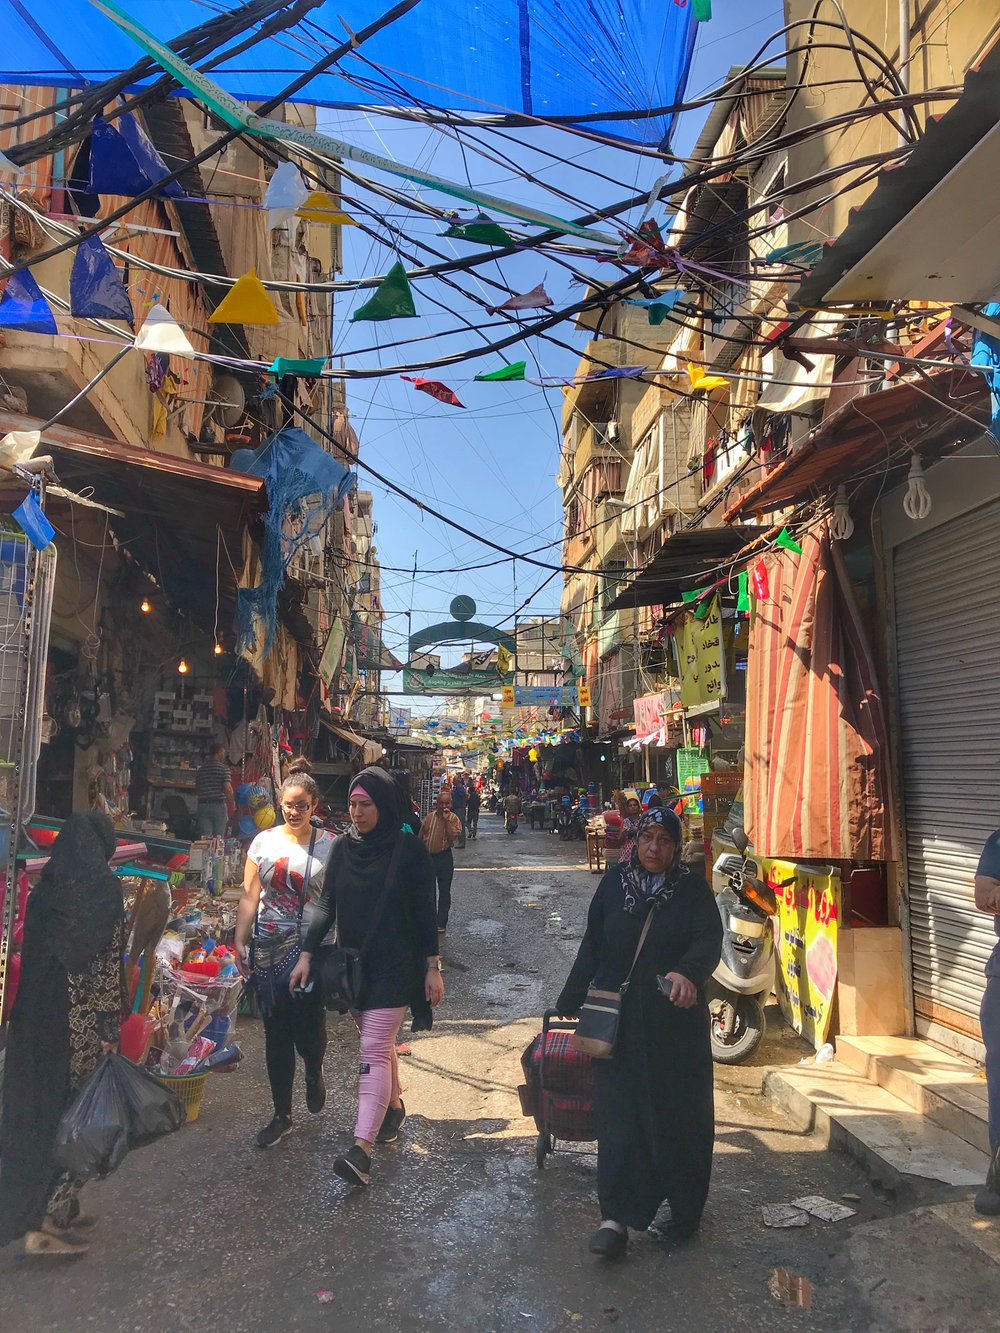 Chatila Palestinian Refugee Camp, Beirut, Lebanon. May 23, 2018.